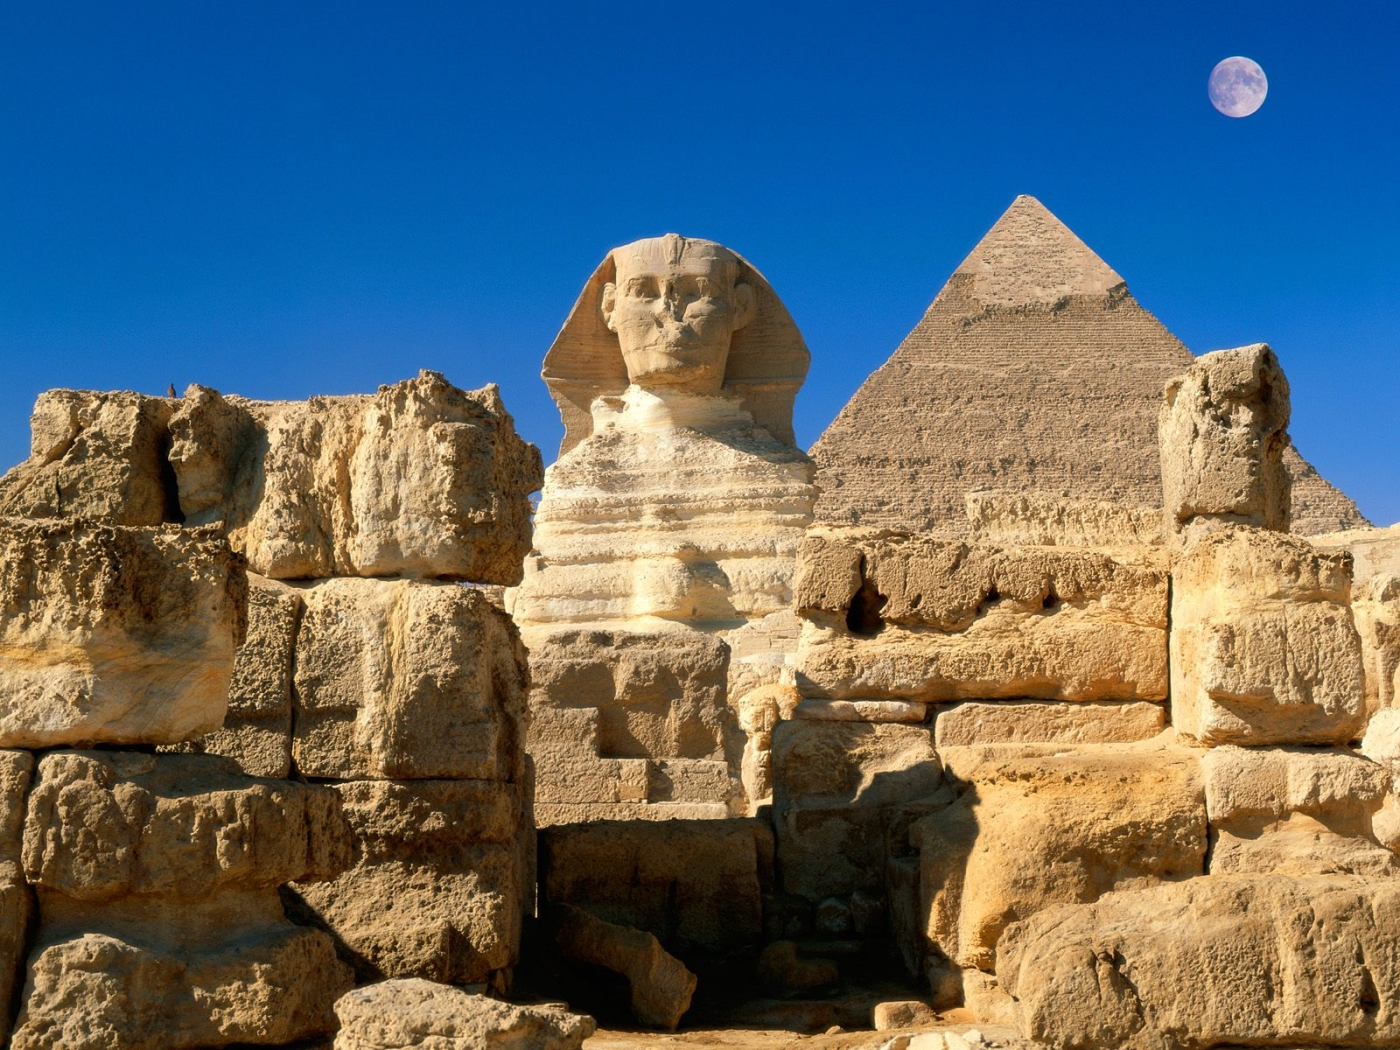 33676 download wallpaper Architecture, Sphinx screensavers and pictures for free